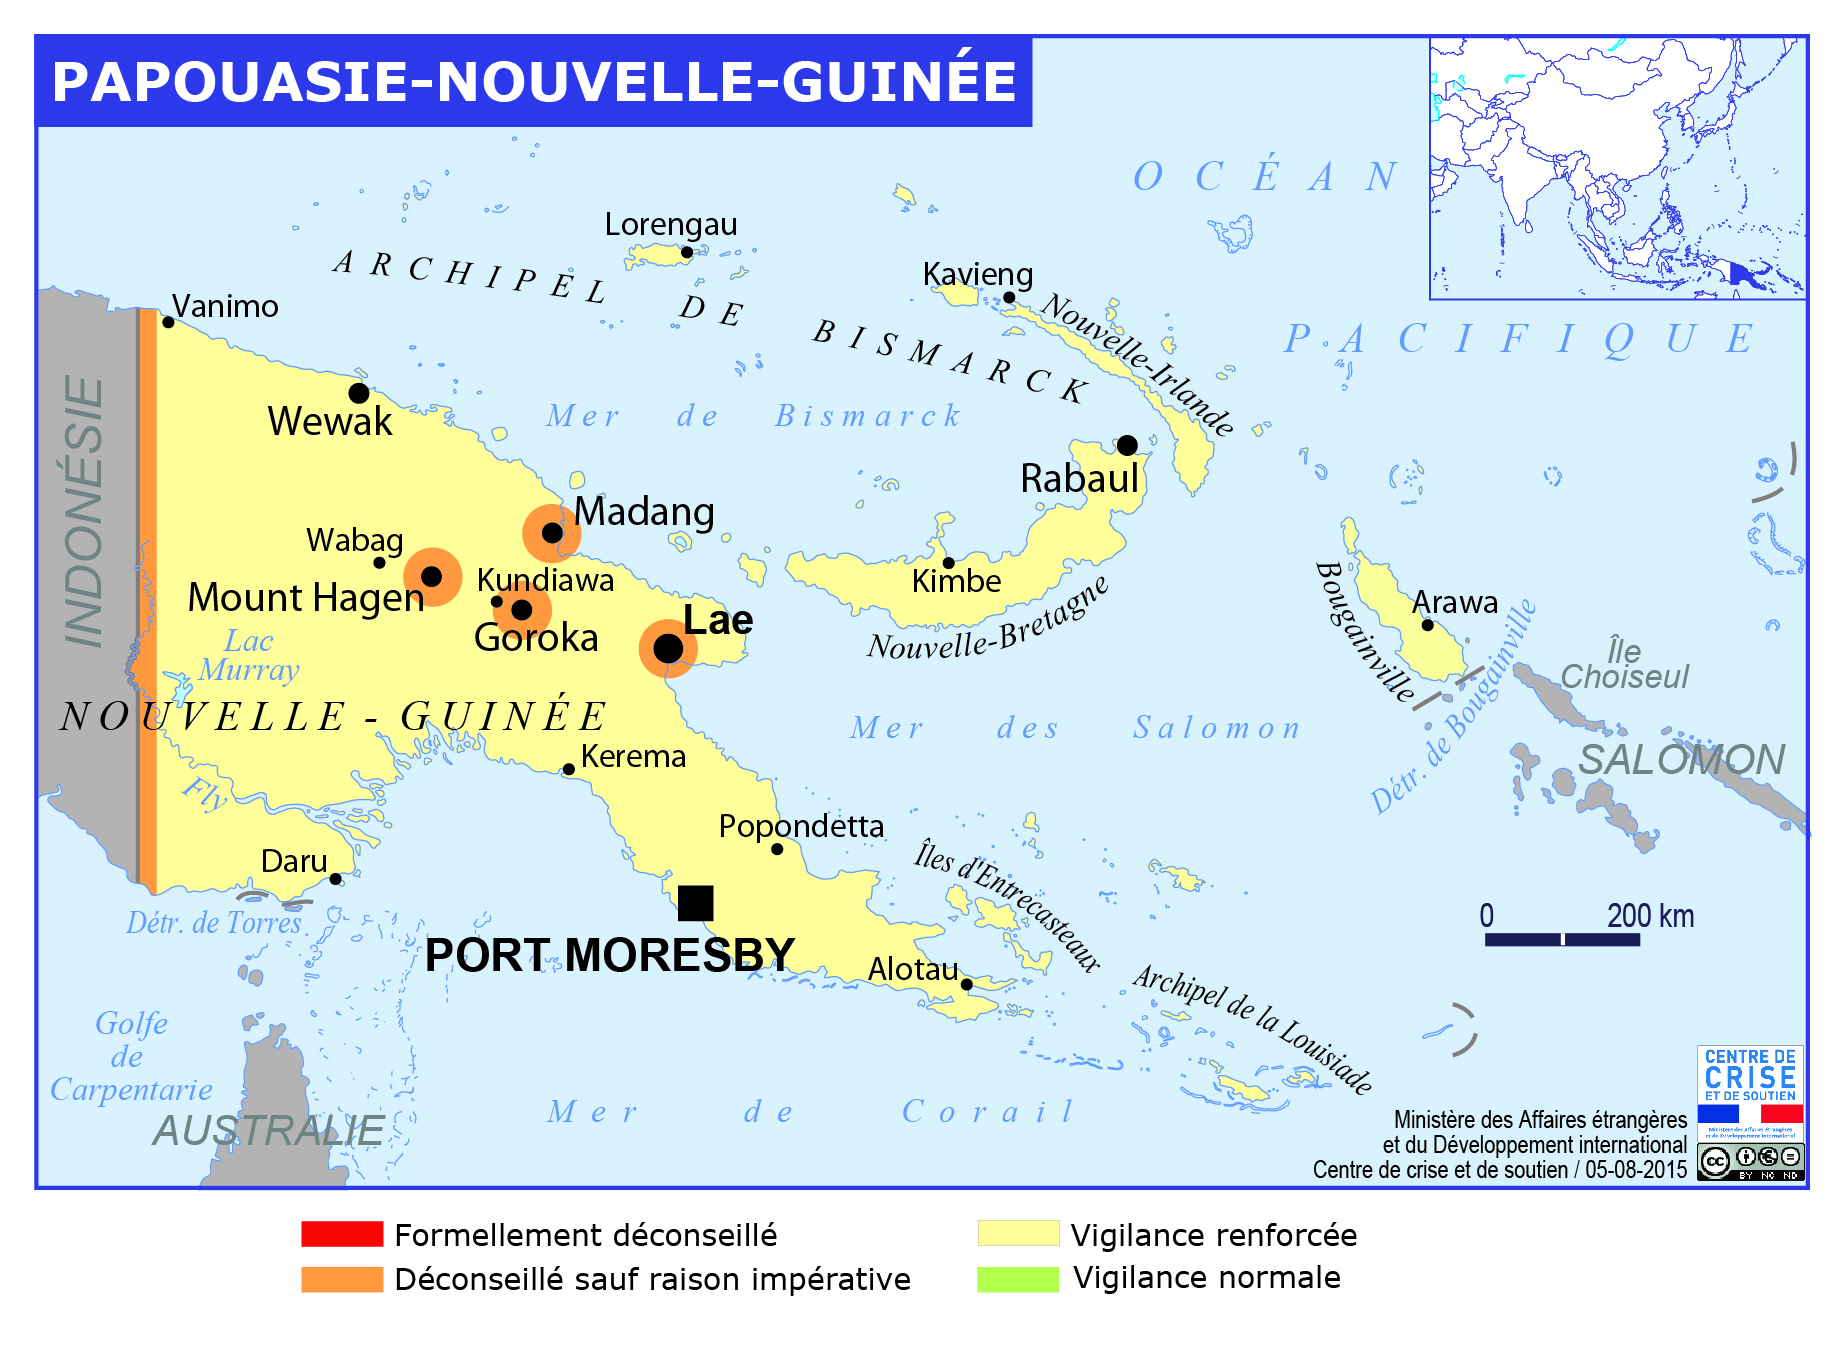 papouasie nouvelle guinee - Photo